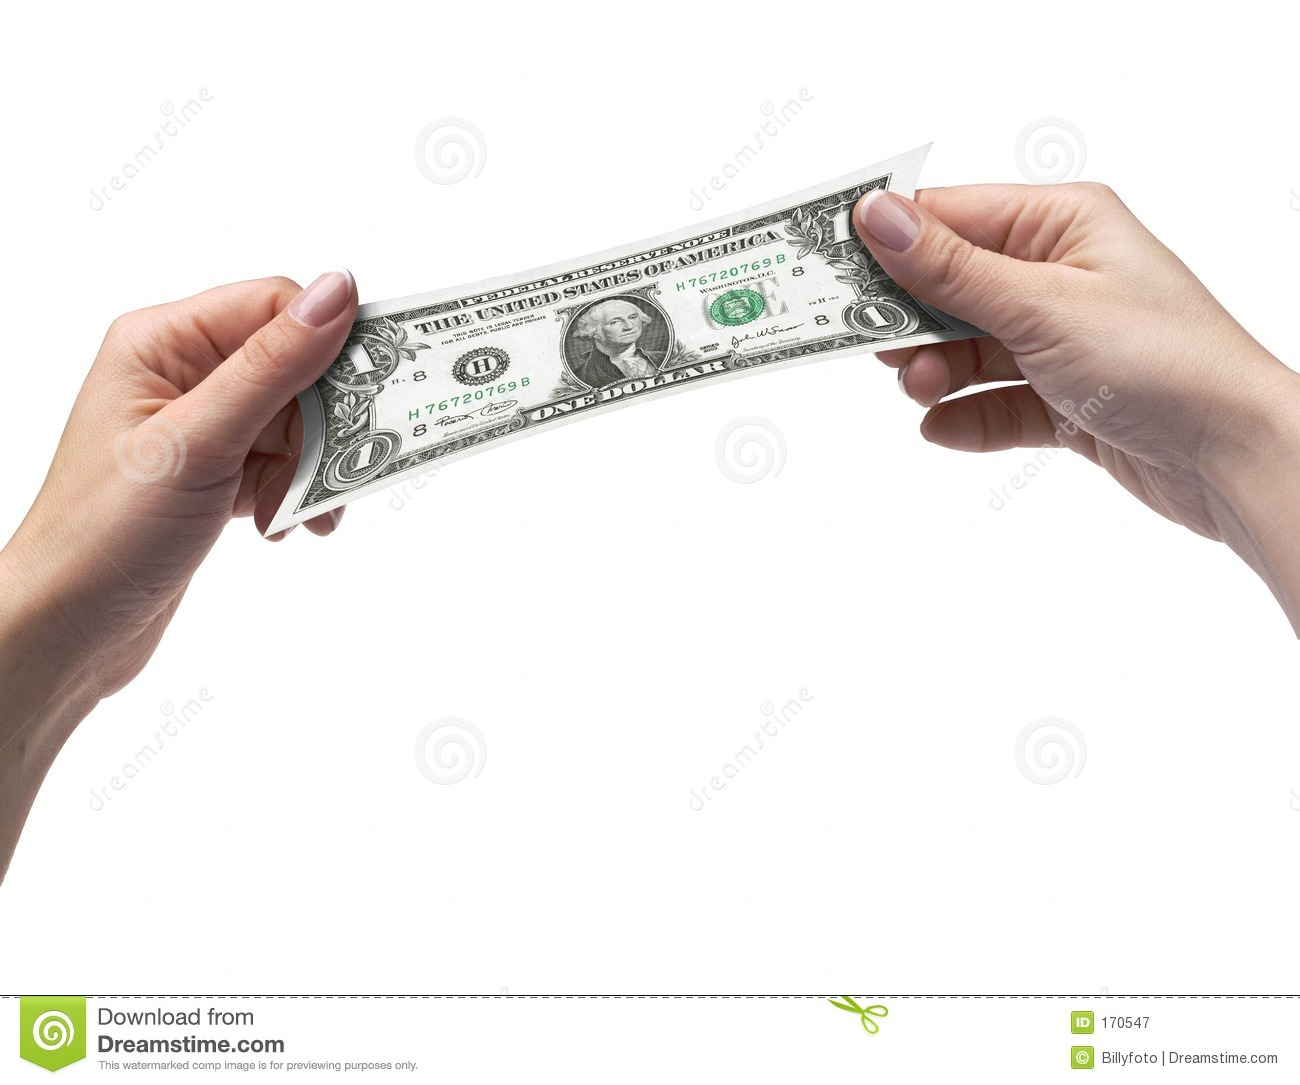 Hands and Dollar